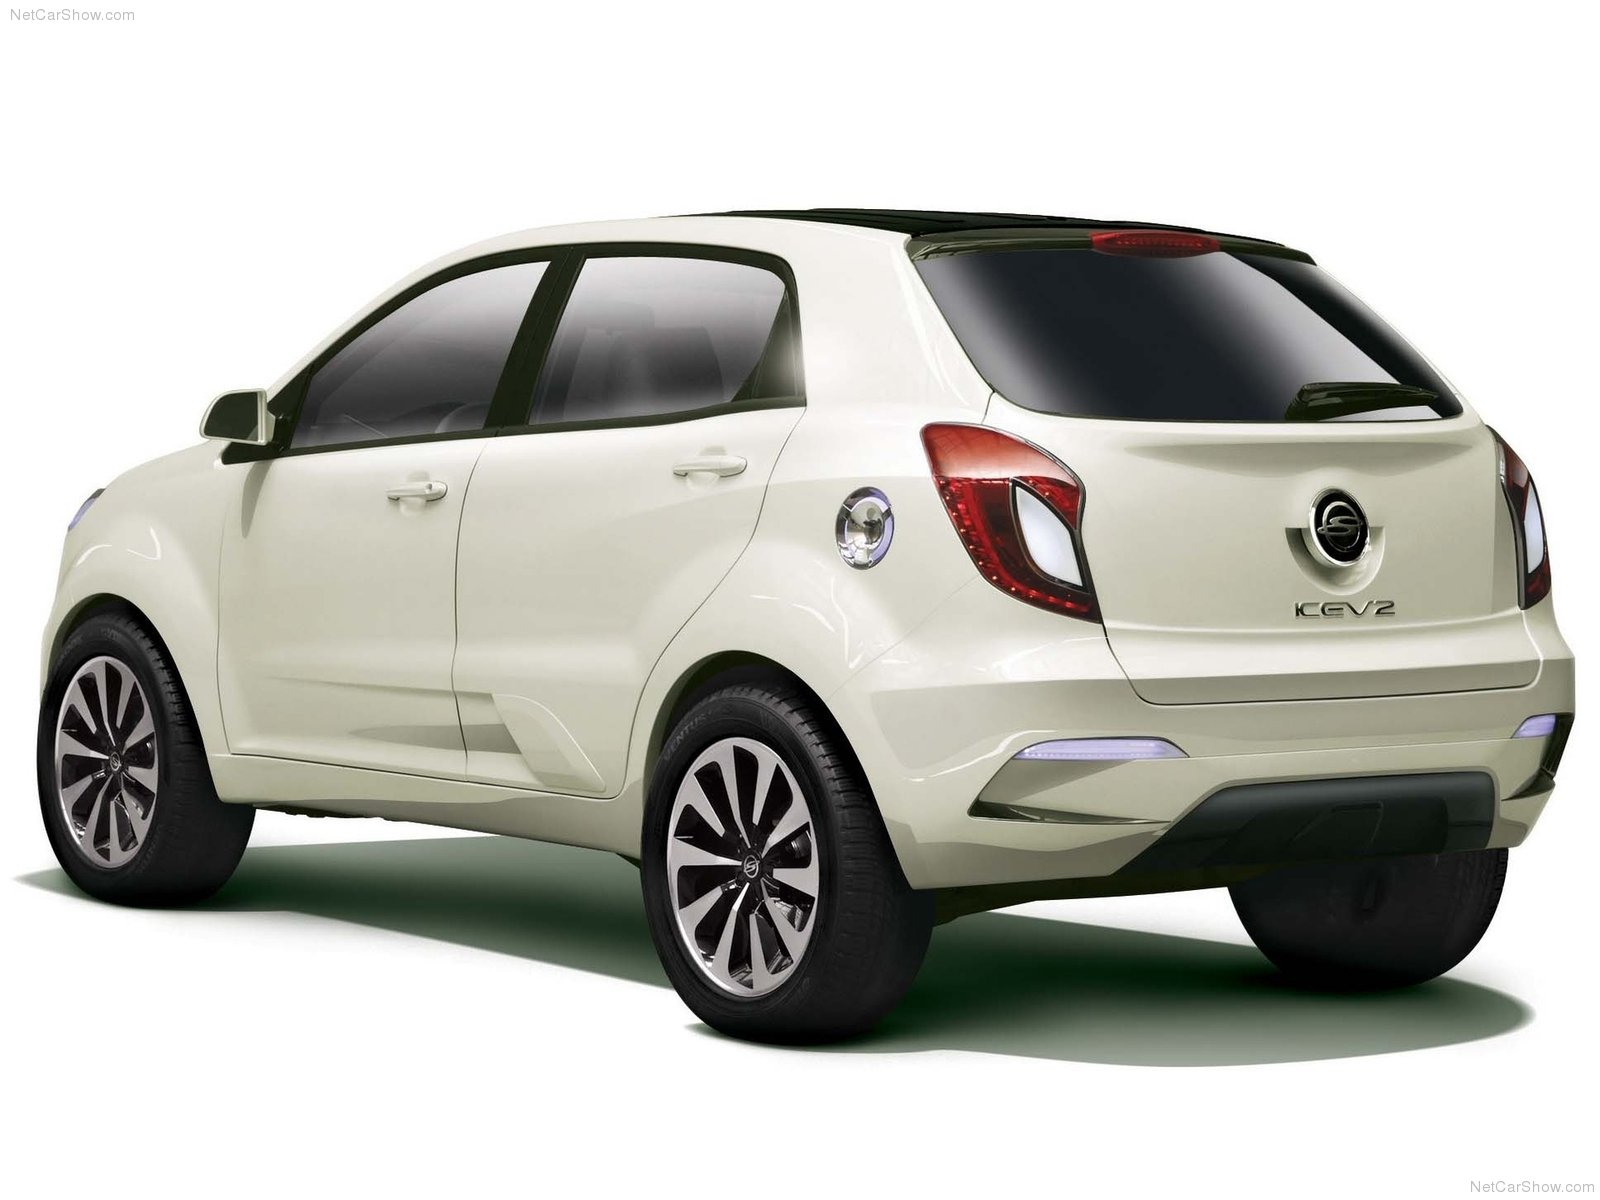 SsangYong KEV2 Concept photo 79934